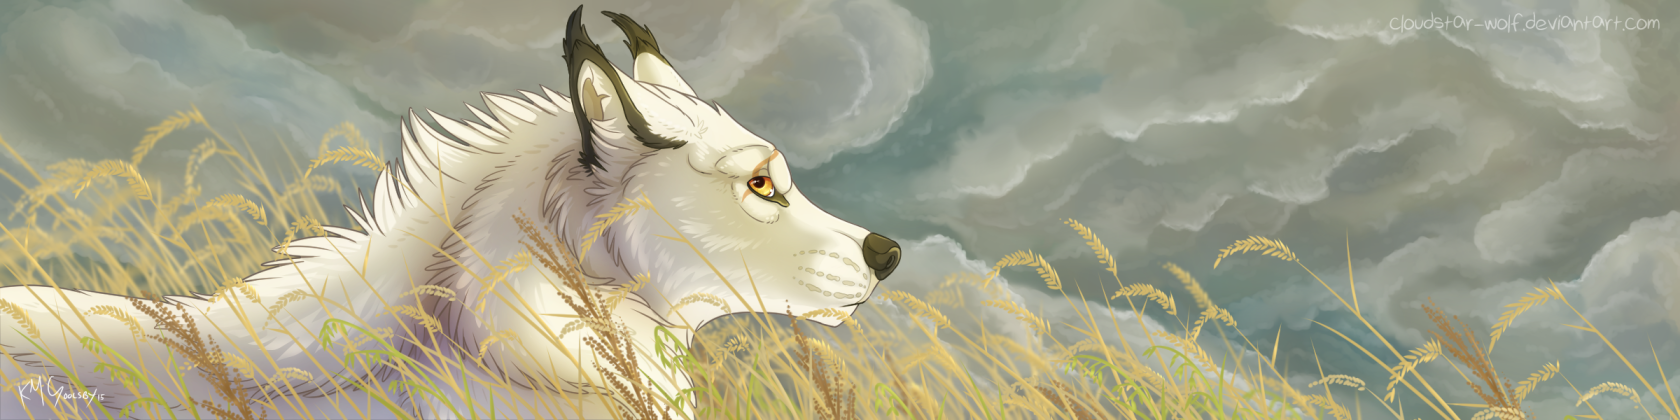 cloudstar-wolf's Profile Picture